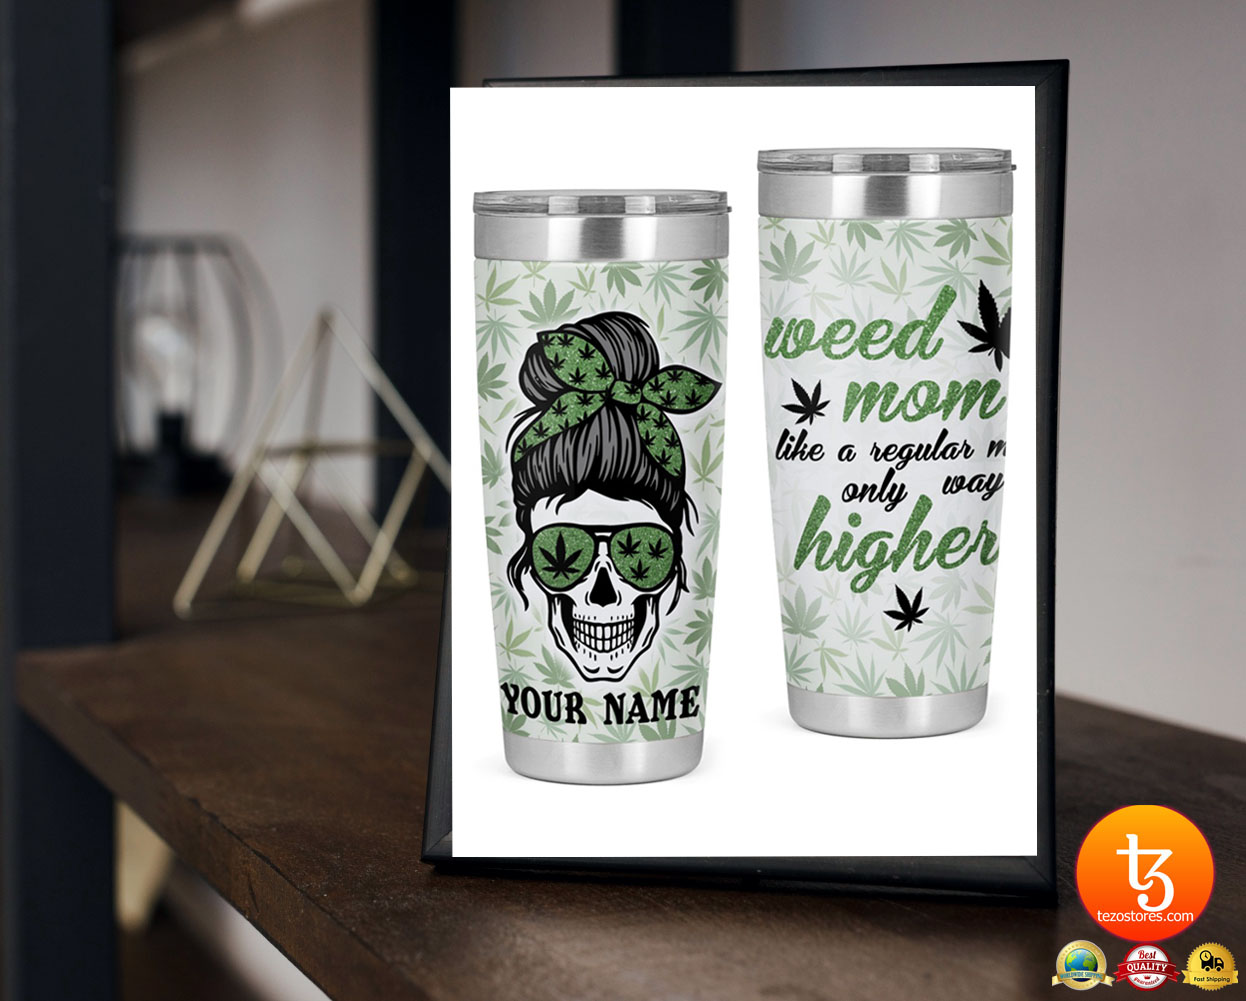 Weed mom like a regular mom only way higher custom name tumbler 21